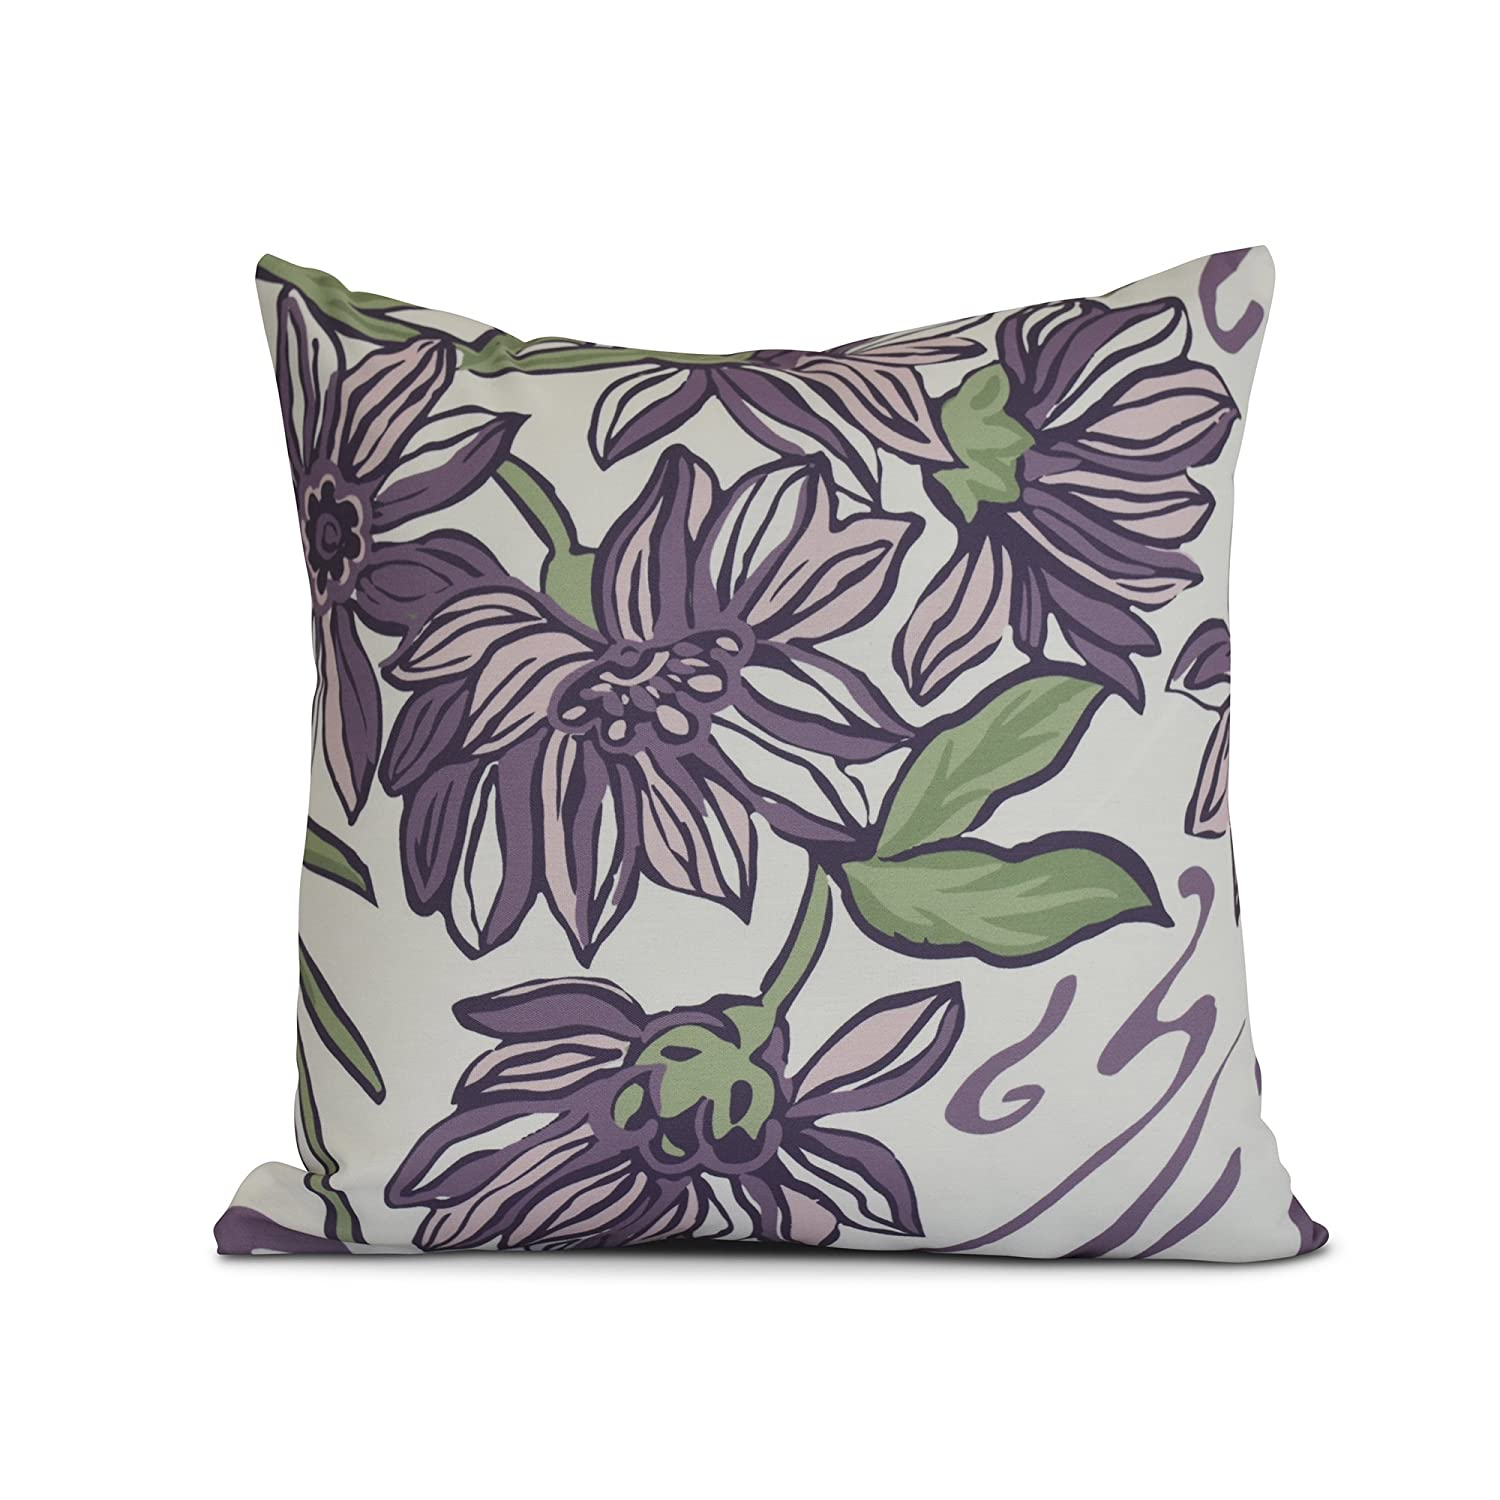 E by design Iona Floral Print Pillow 26 x 26 Blue